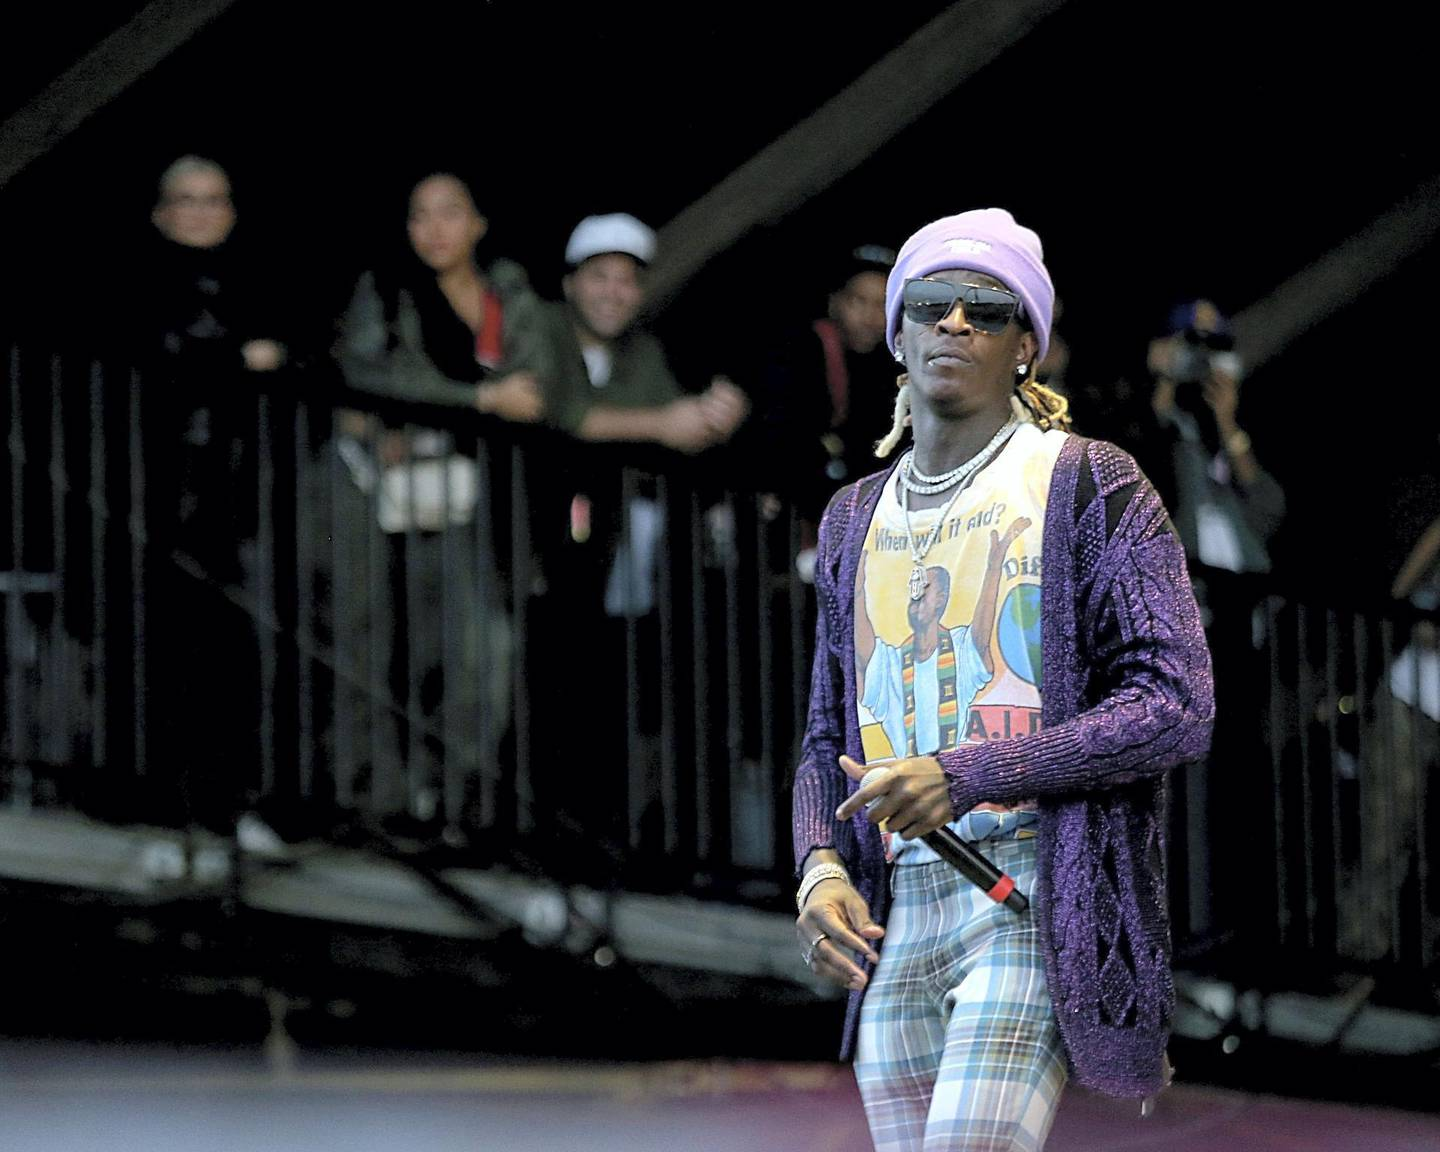 HOUSTON, TEXAS - NOVEMBER 17:  Young Thug performs in concert during the inaugural Astroworld Festival at NRG Park on November 17, 2018 in Houston, Texas.  (Photo by Gary Miller/Getty Images)